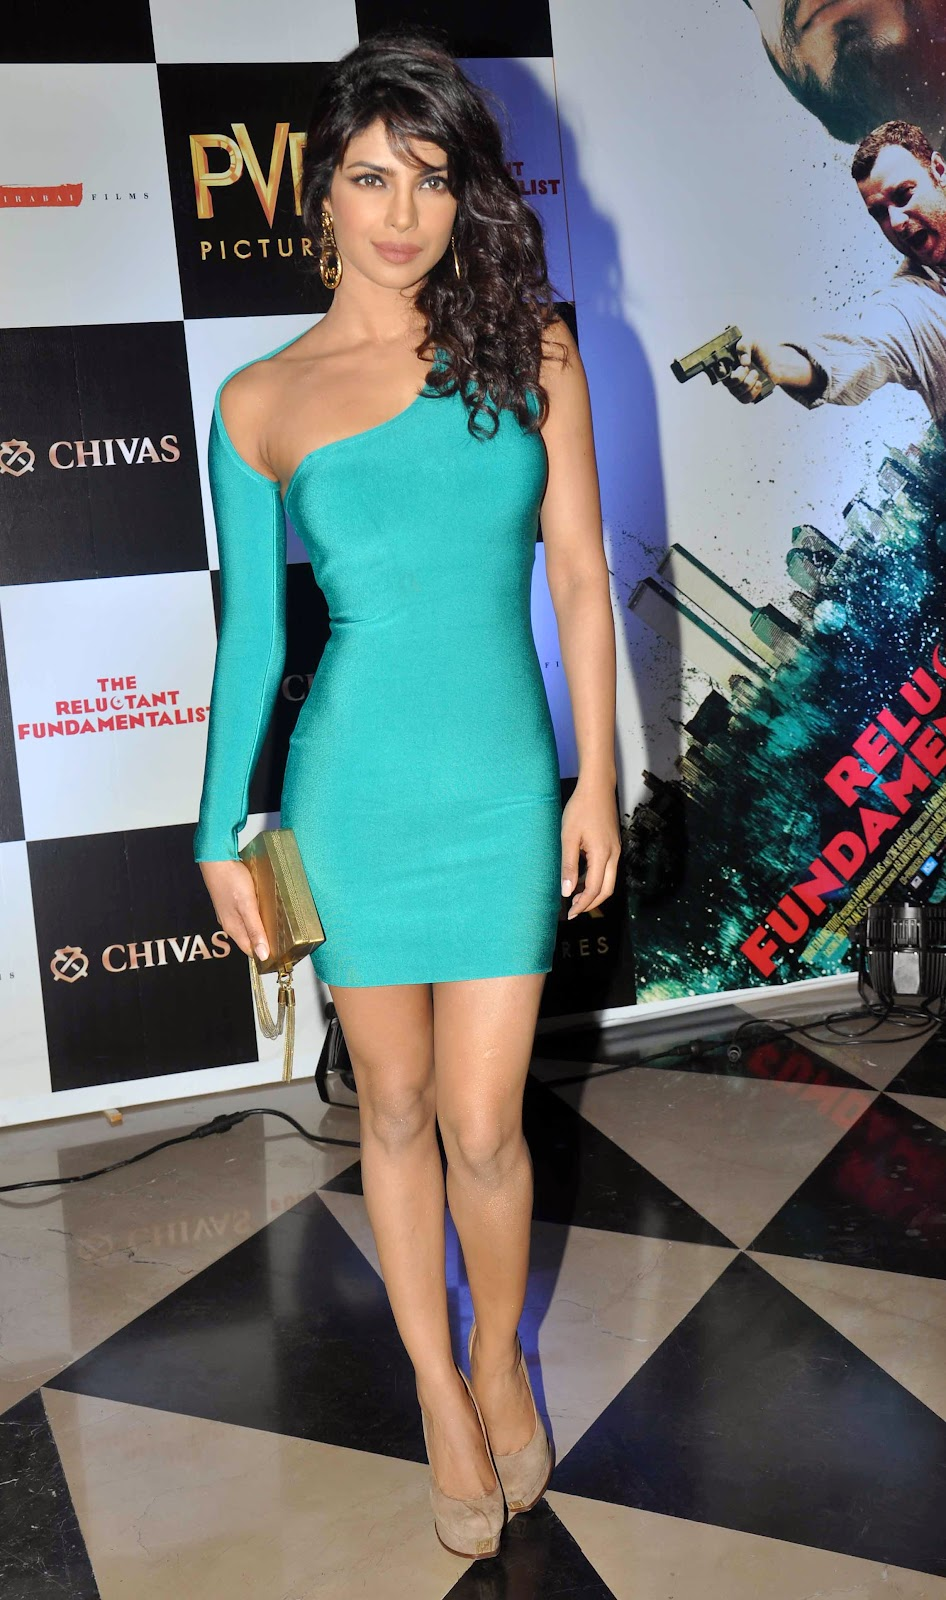 priyanka-chopra-in-tight-sky-blue-mini-dress-flaunting-her-hourglass-figure